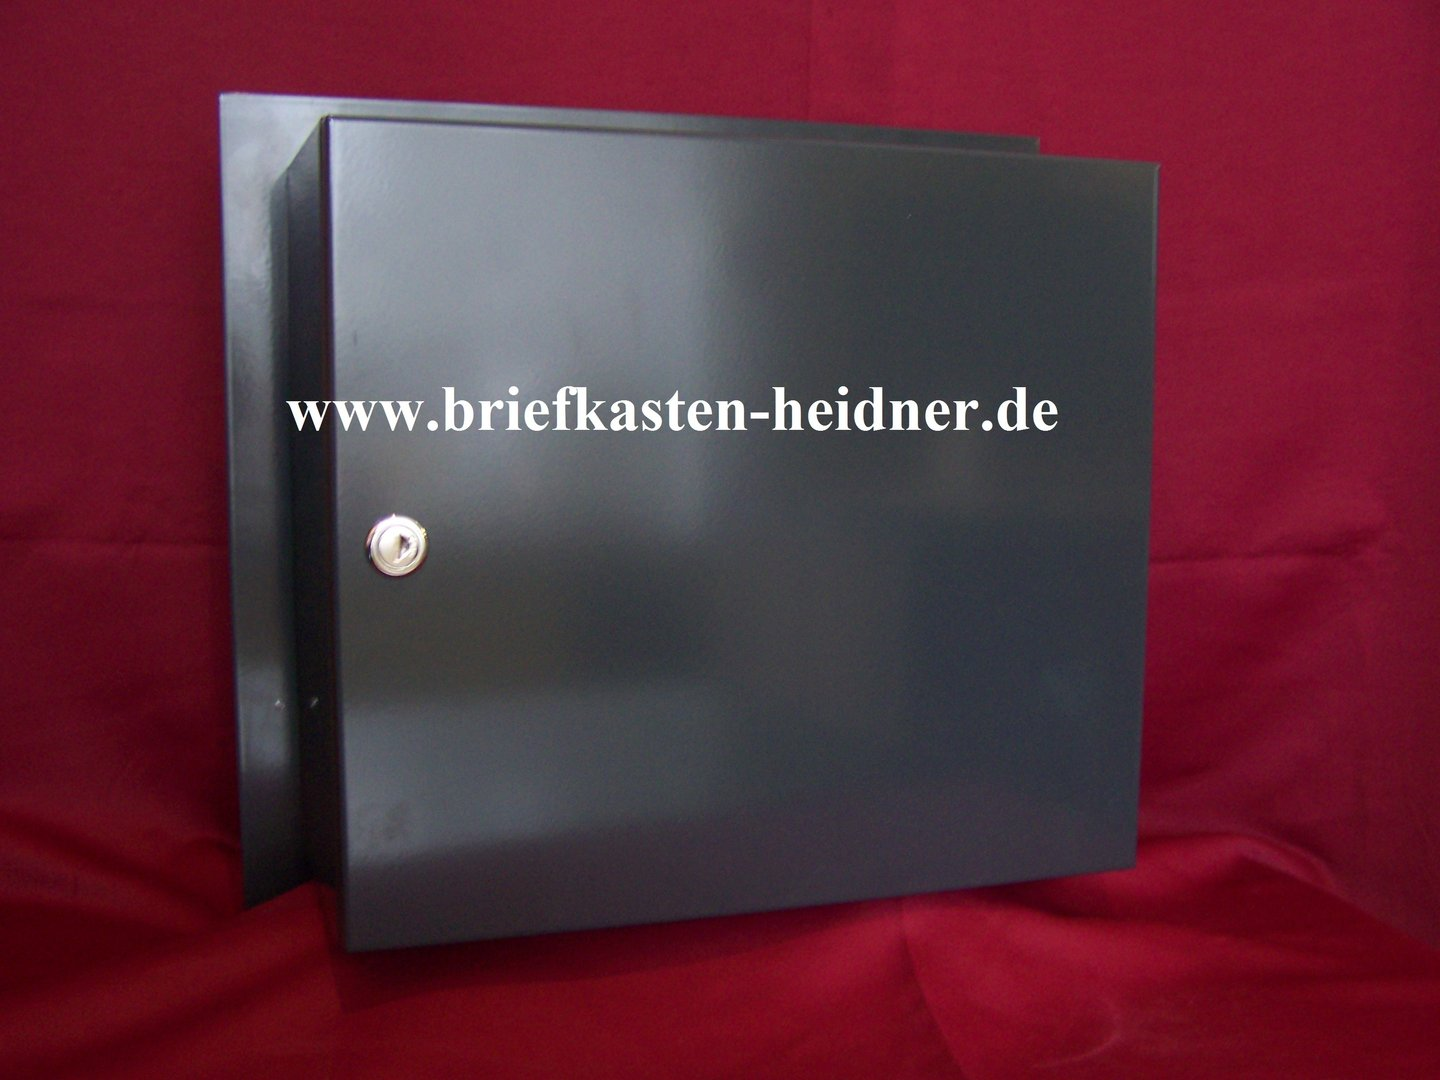 mdh116 knobloch mauerdurchwurf briefkasten 1 teilig. Black Bedroom Furniture Sets. Home Design Ideas